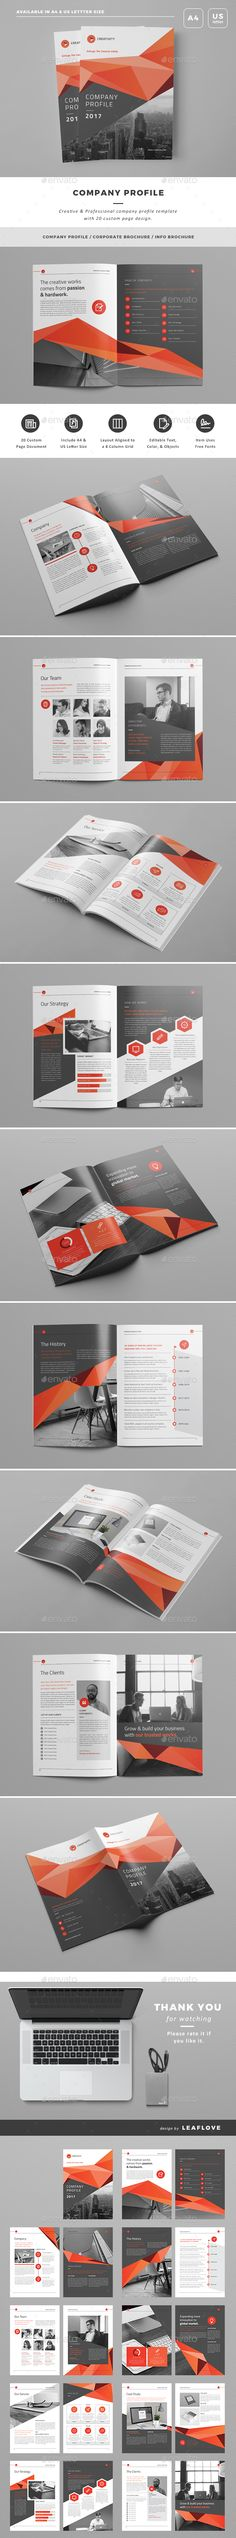 Clean \ Professional Company Profile With Include Portfolio - professional business profile template